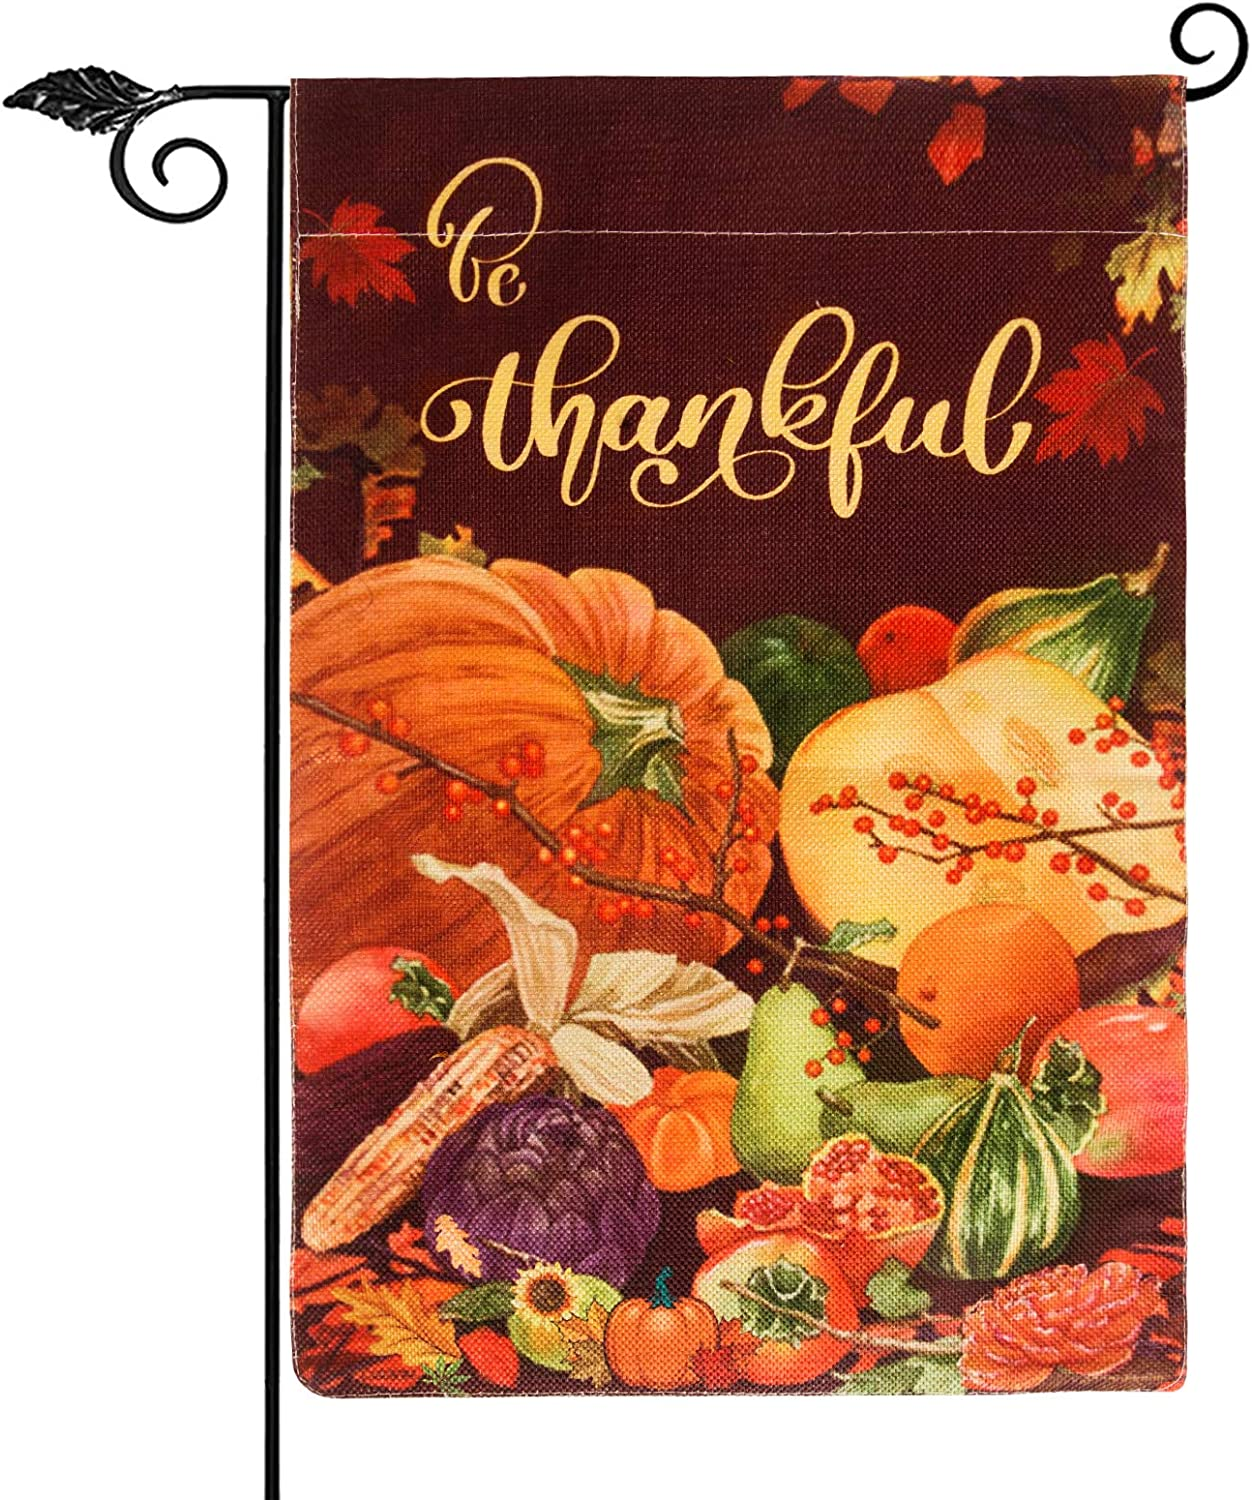 Unves Thanksgiving Garden Flag 12.5Unves Thanksgiving Garden Flag 12.5 x 18 Inch, Be Thankful Thanksgiving Flag Double Sided Decorative Pumpkin Fall Garden Flag for Thanksgiving Day Harvest Fall Autumn Yard Outdoor Decor